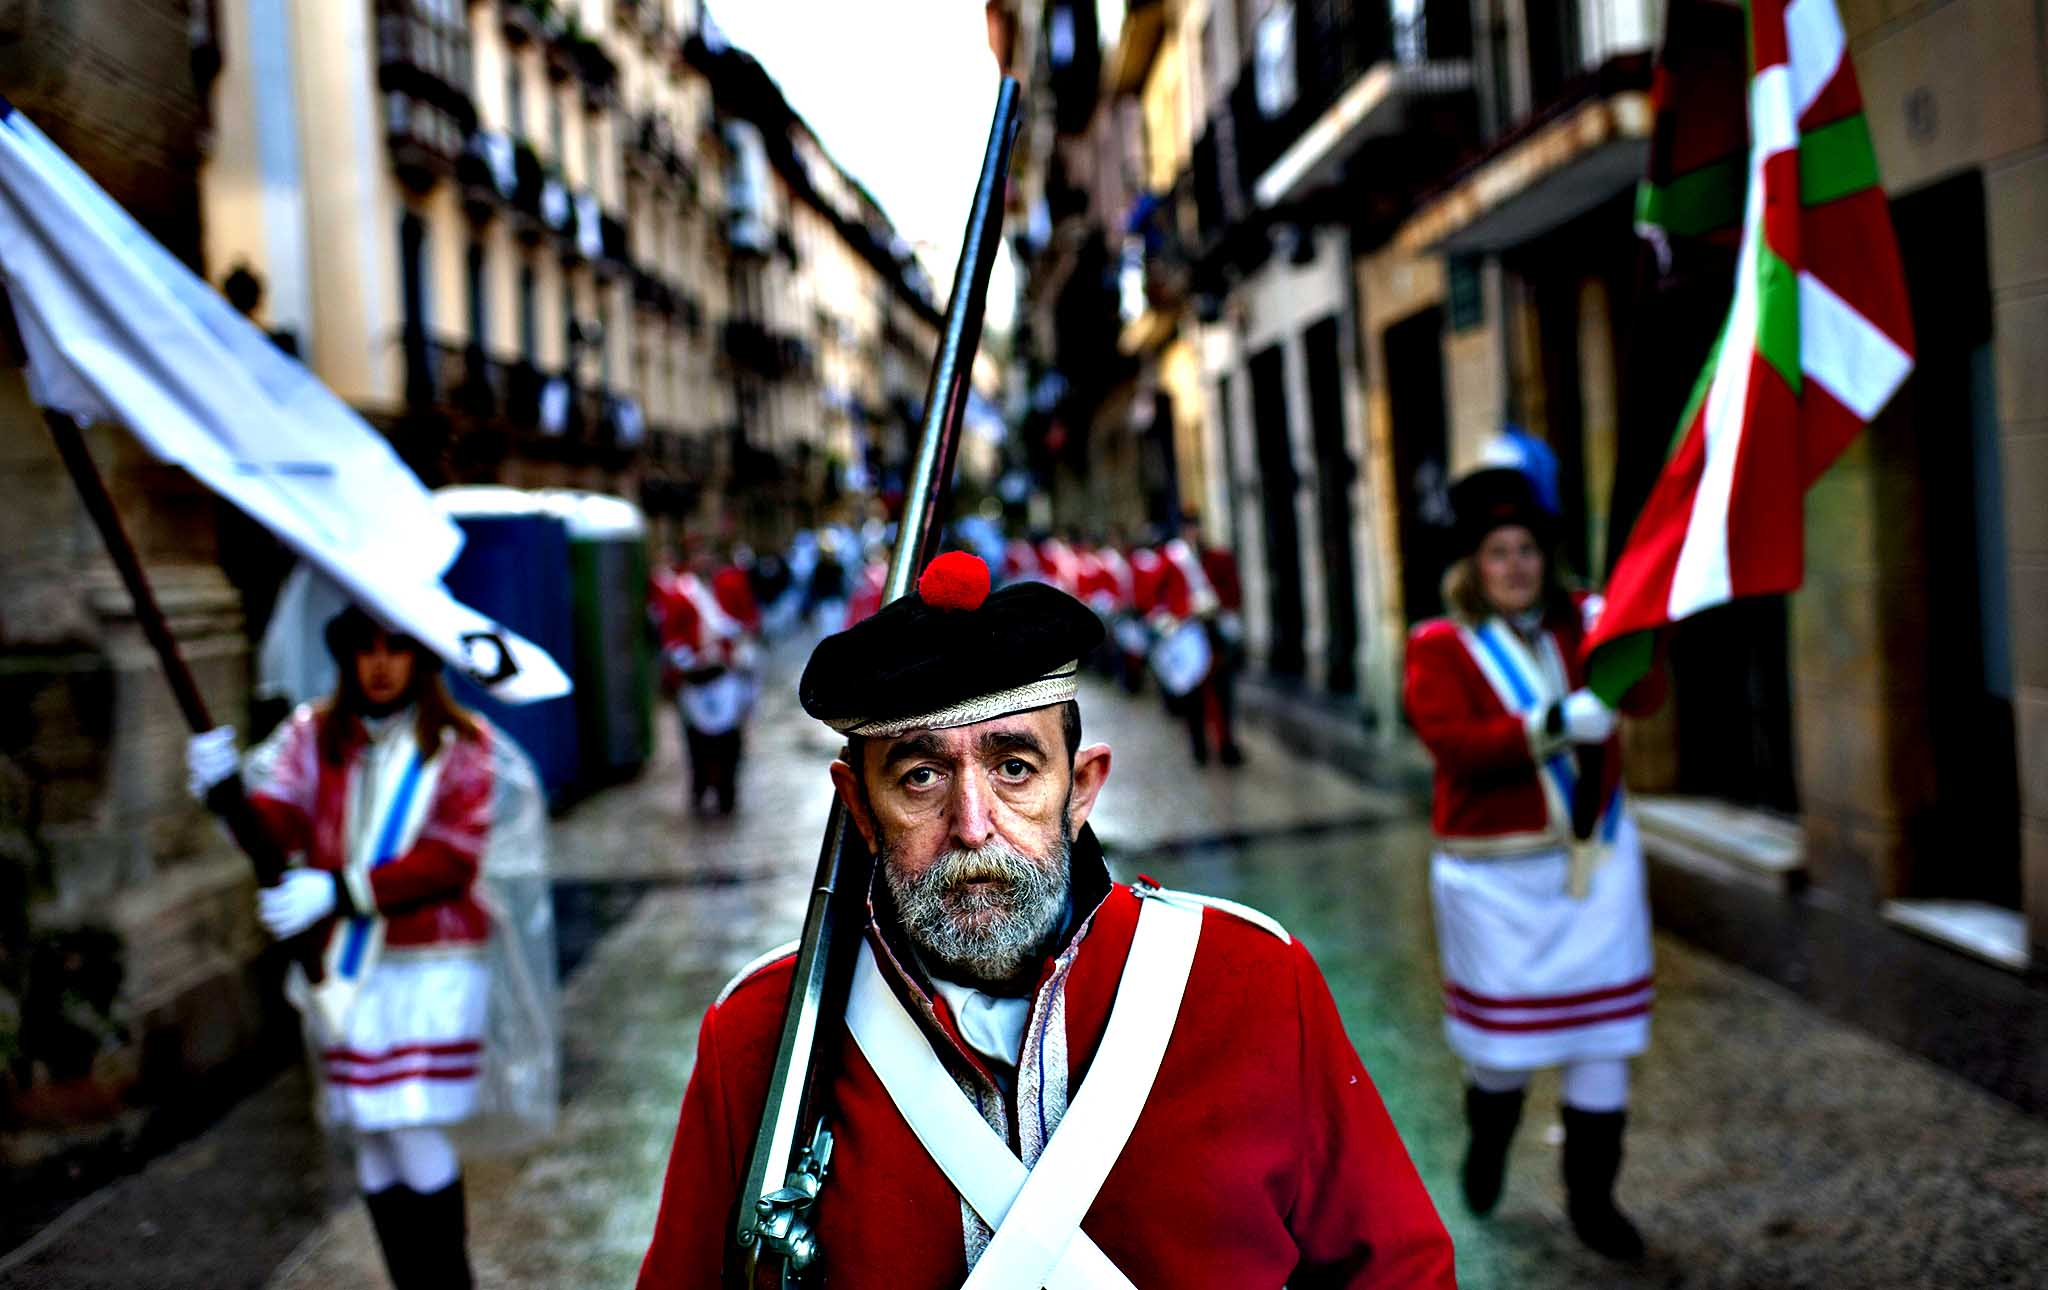 A ''Tamborillero'' wearing his uniform takes part in the traditional ' La Tamborrada', during 'El Dia Grande', the main day of San Sebastian feasts, in the Basque city of San Sebastian, northern Spain, Monday, Jan. 20, 2014. From midnight,  companies of perfectly uniformed marchers parade through the streets of San Sebastian playing drums and barrels in honor of their patron saint.